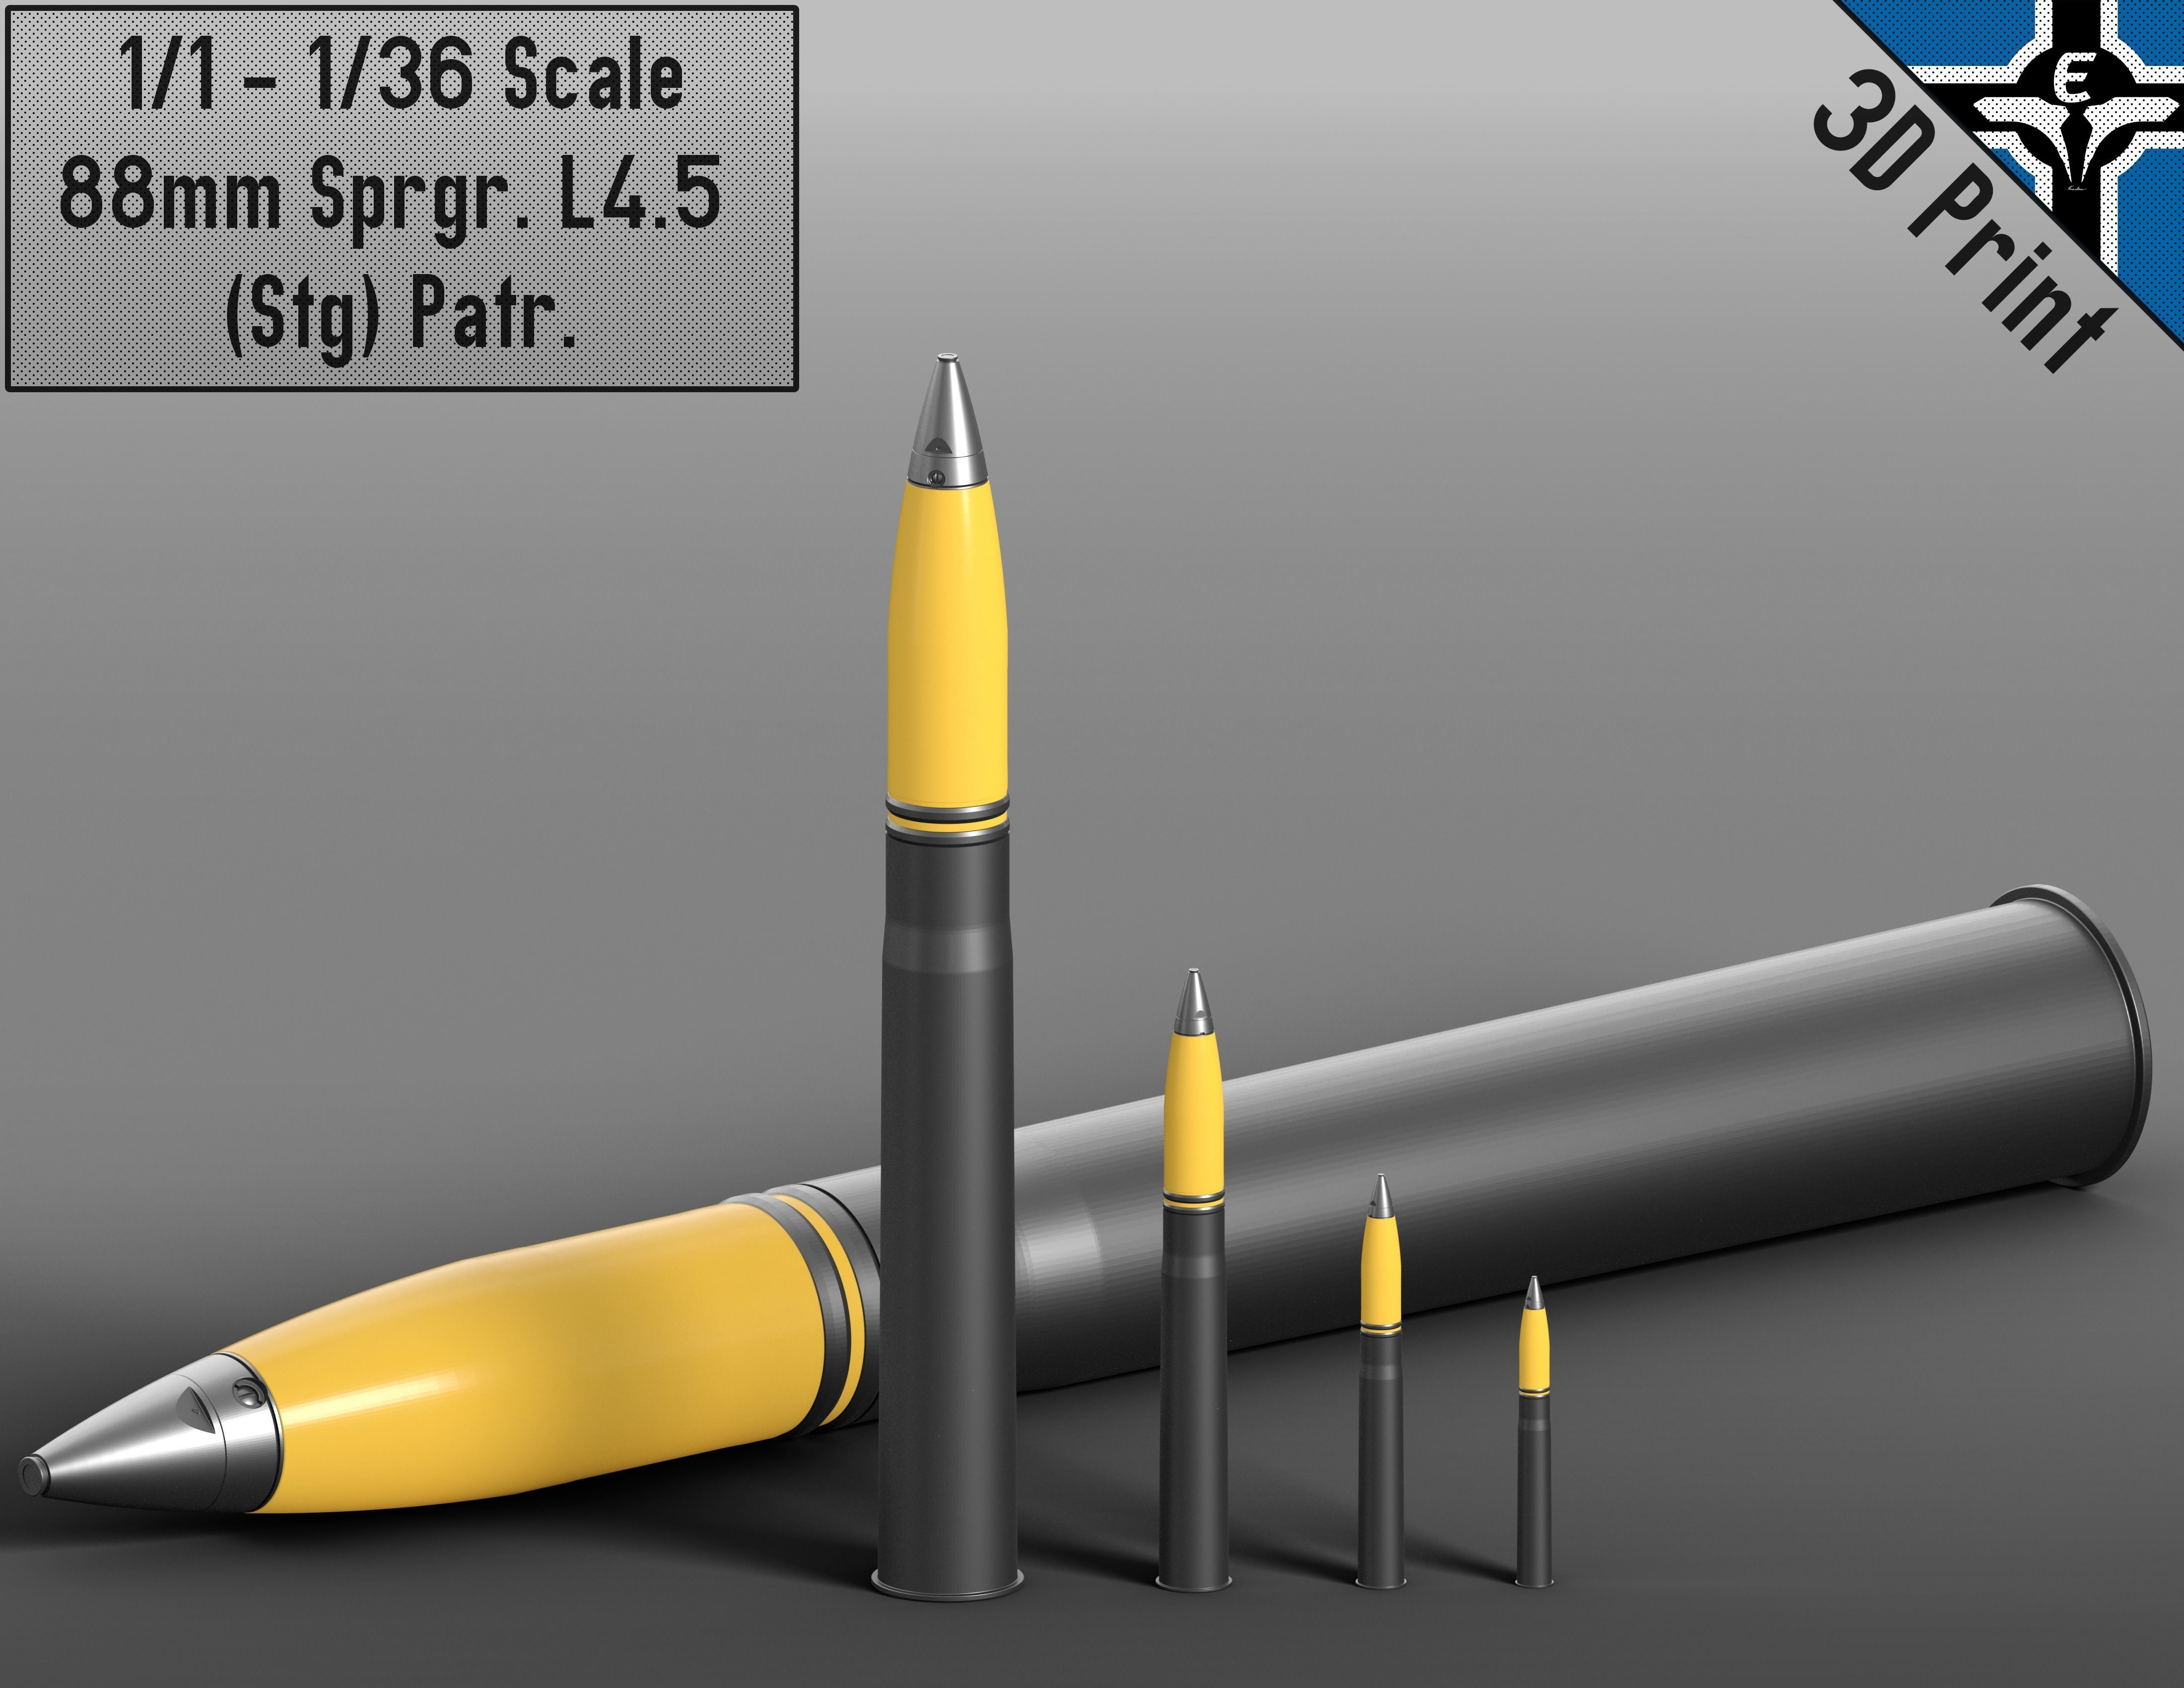 Small Scale - 88mm Sprgr L4-5 Stg Patr --- KwK 36 - Flak 18 | 3D Print Model